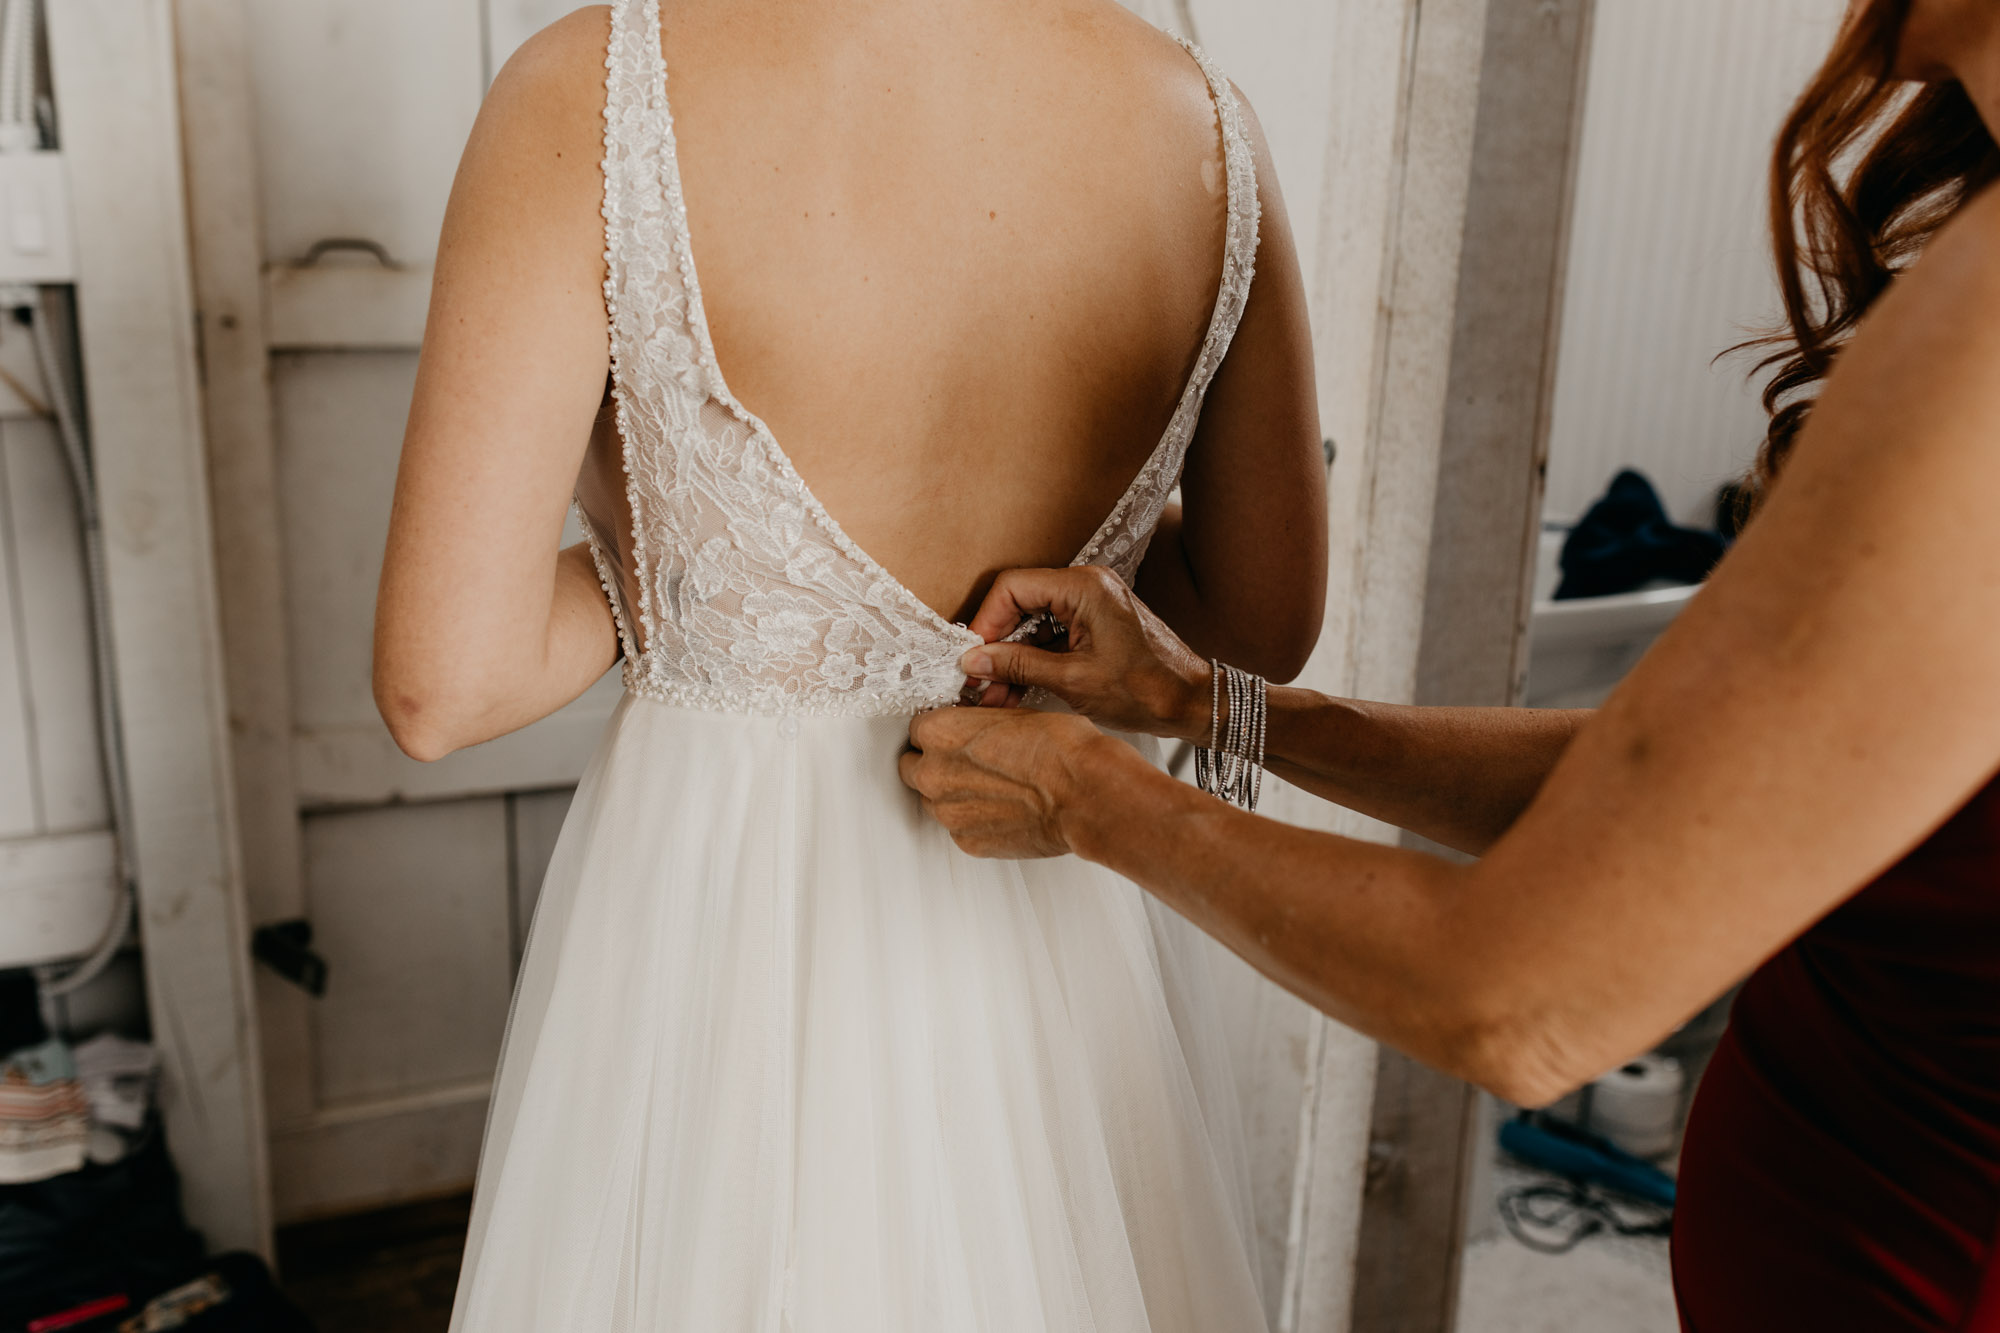 Mother of the bride zipping up brides wedding dress